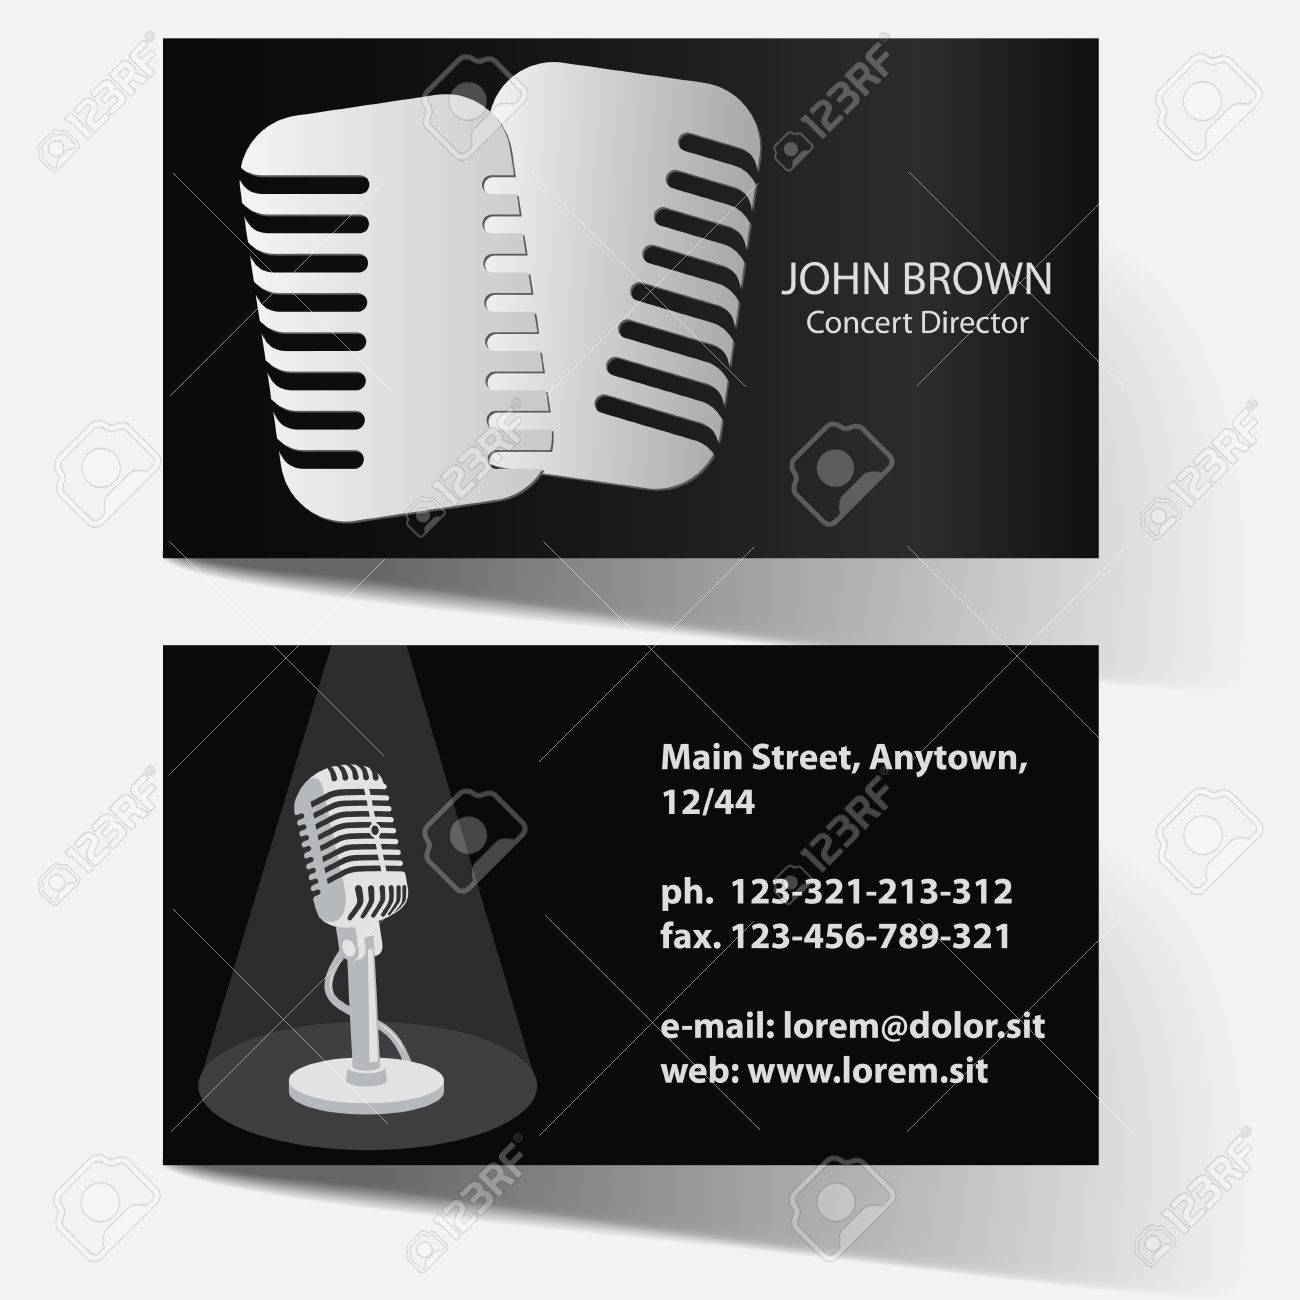 Artiste Business Card With Vintage Microphone, Actor Of Theater ...